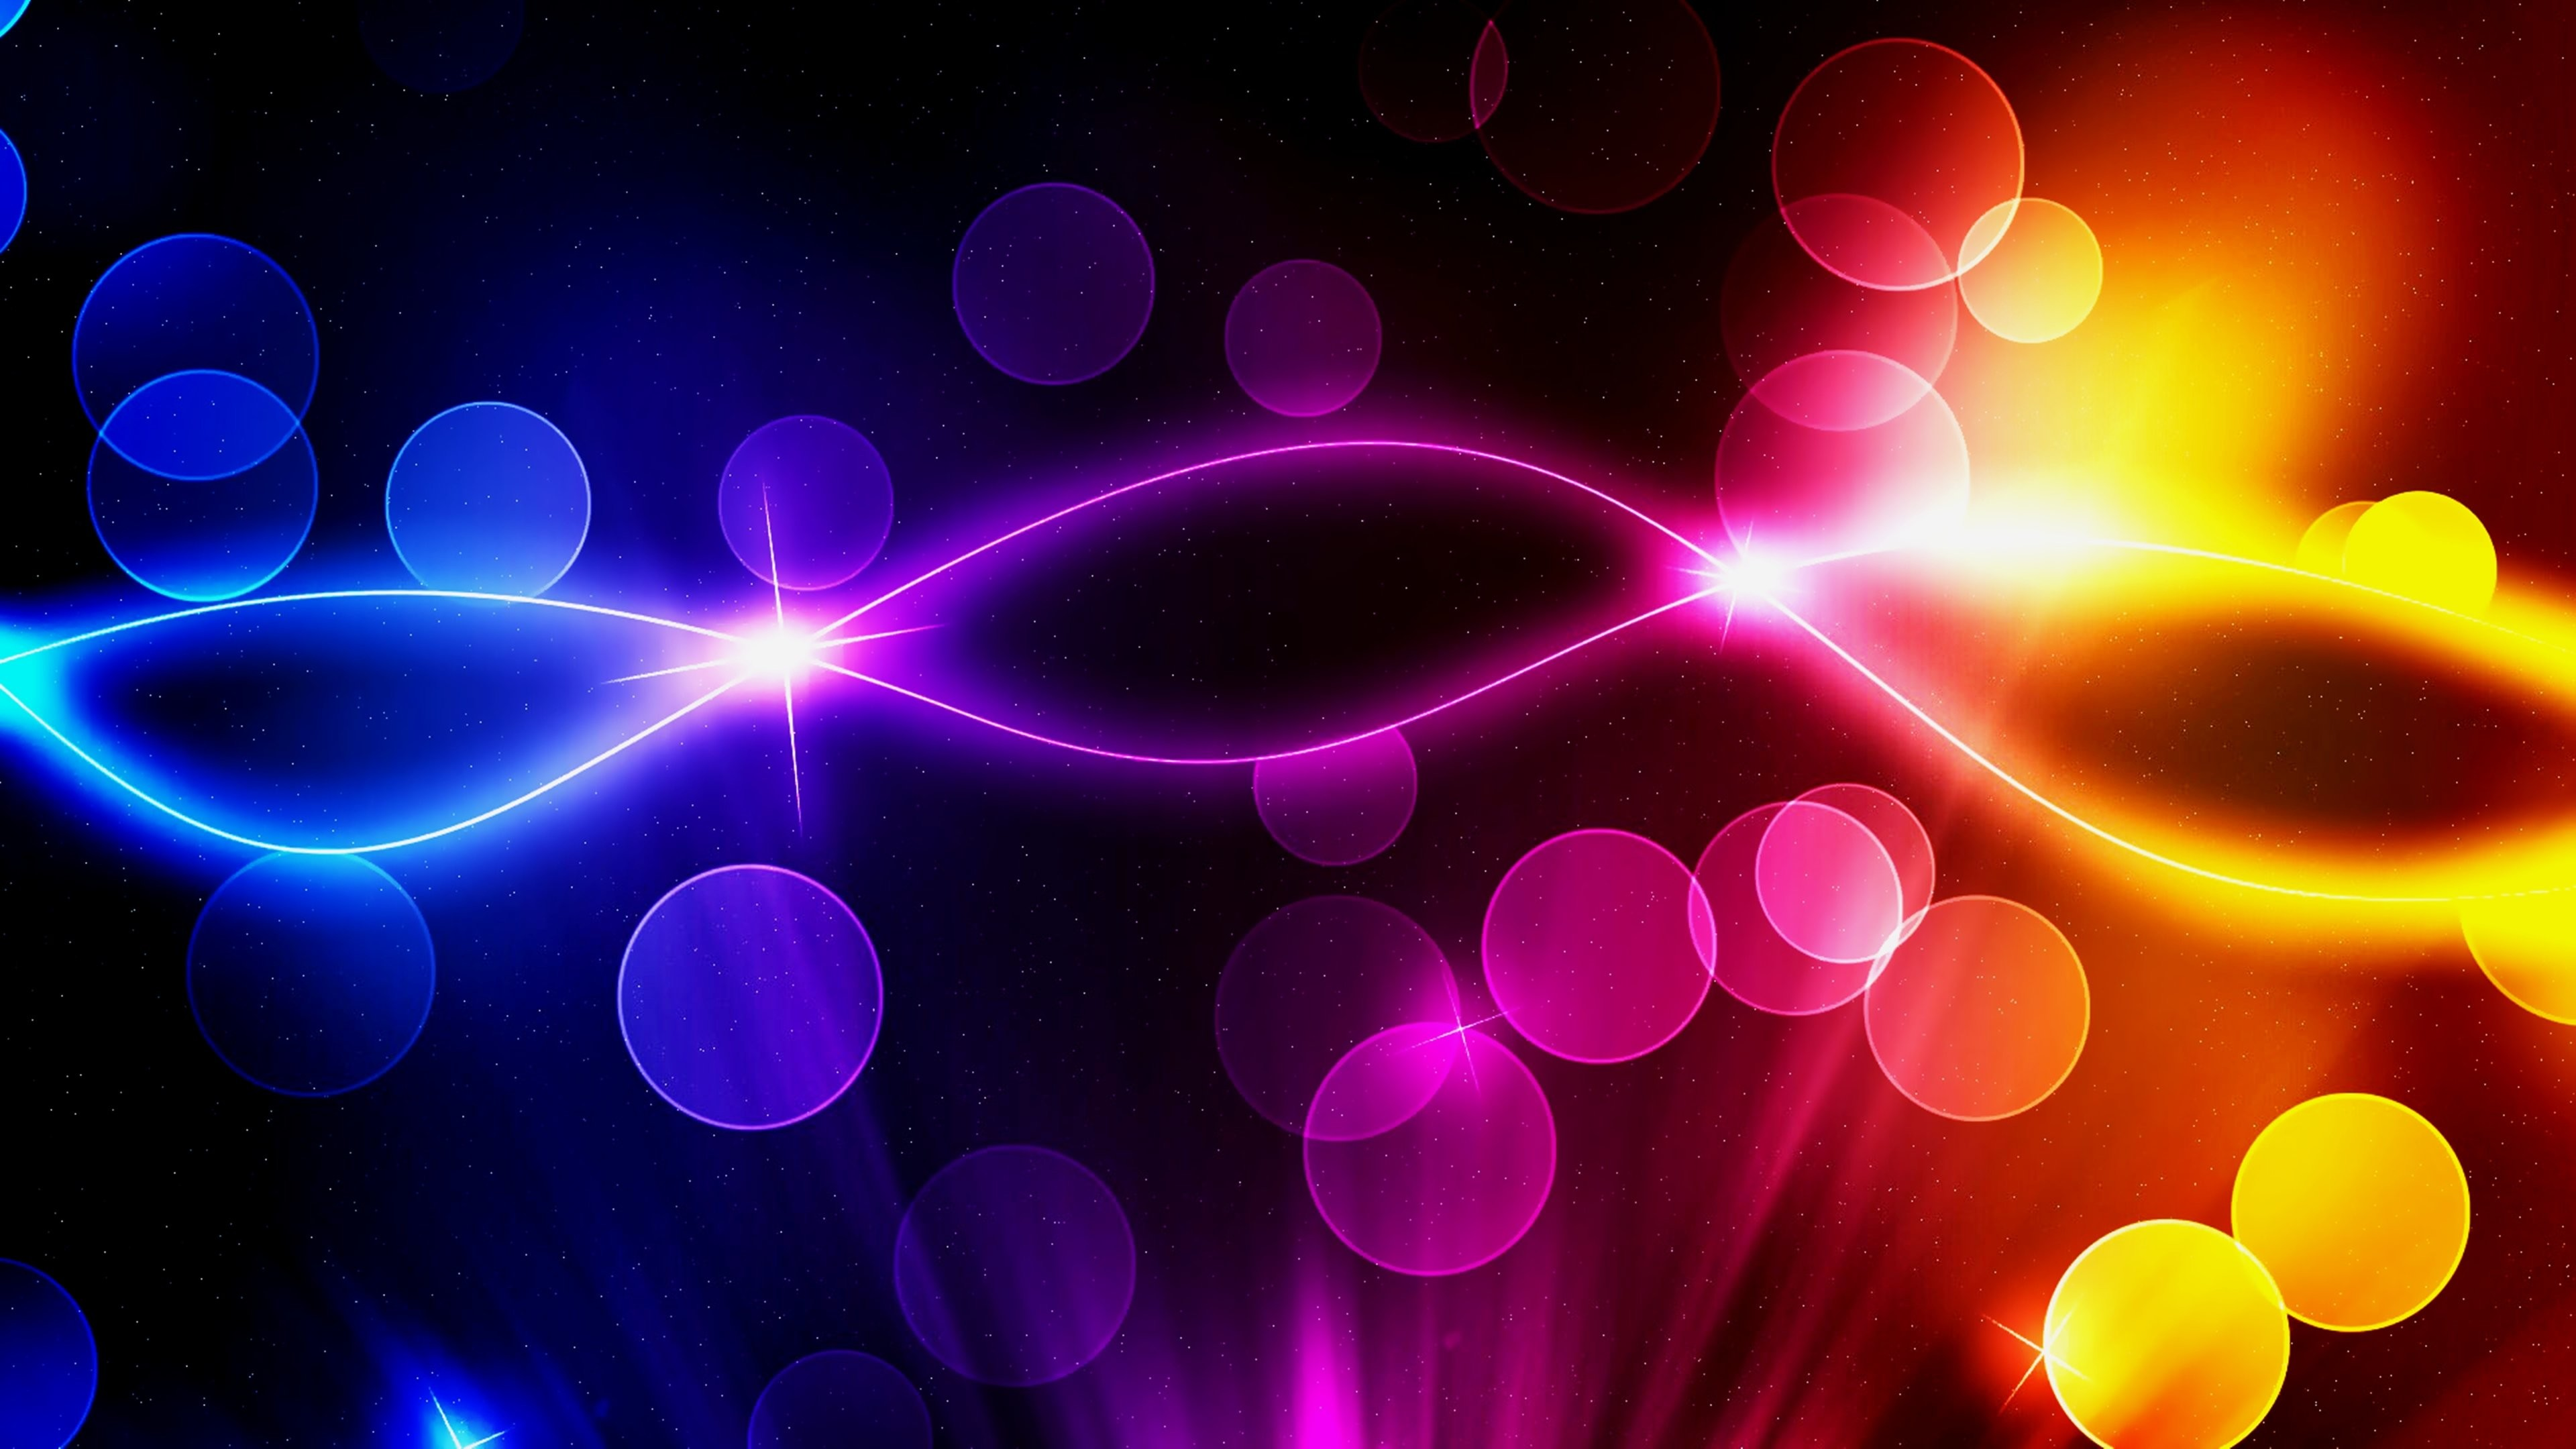 1920x1080 Abstract Wallpaper Find Best Latest In HD For Your PC Desktop Background